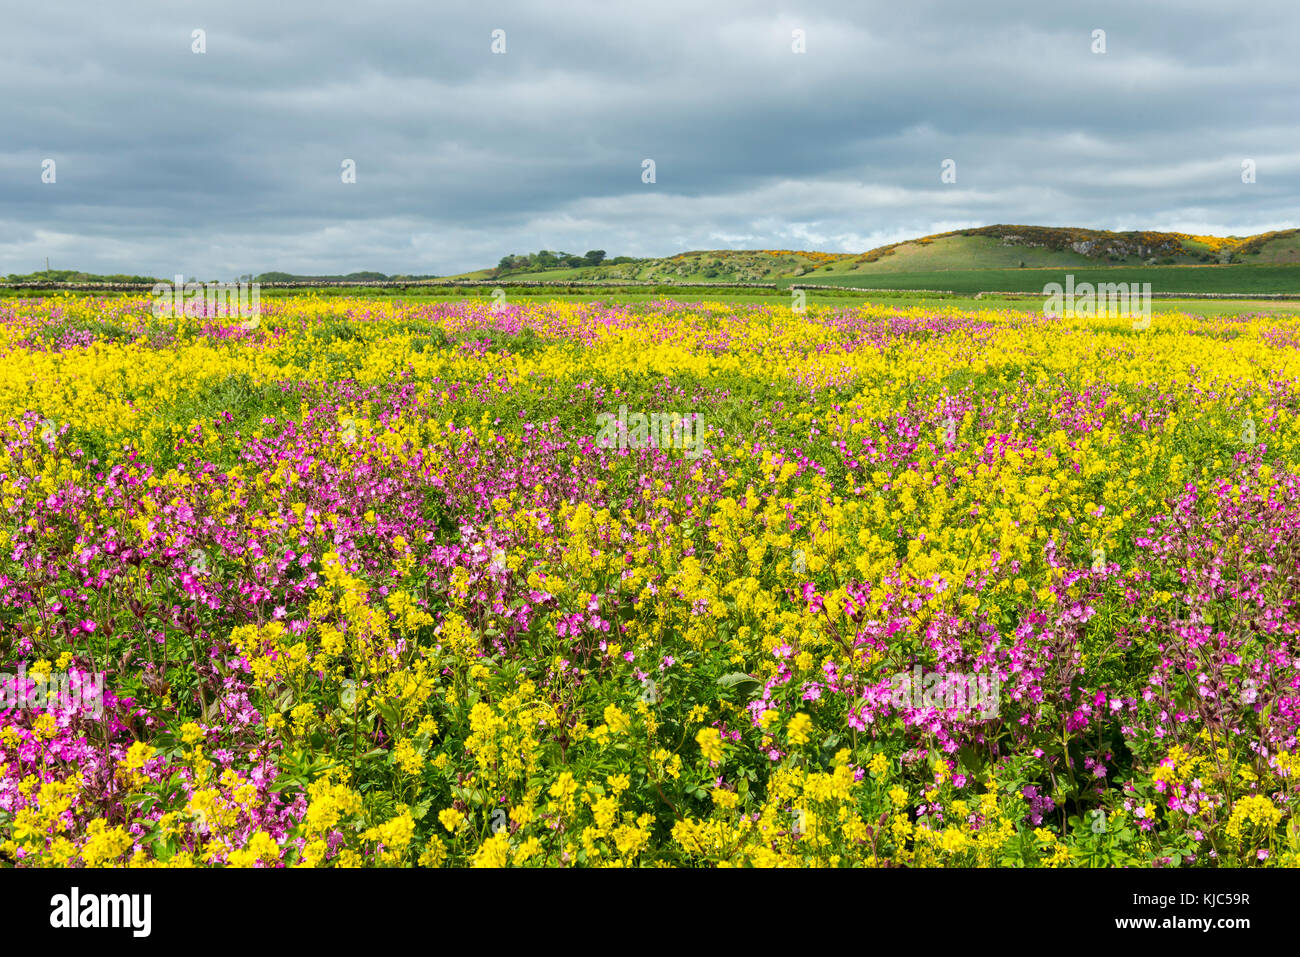 Scenic of blooming canola field and pink flowers on a cloudy day at Bamburgh in Northumberland, England, United - Stock Image